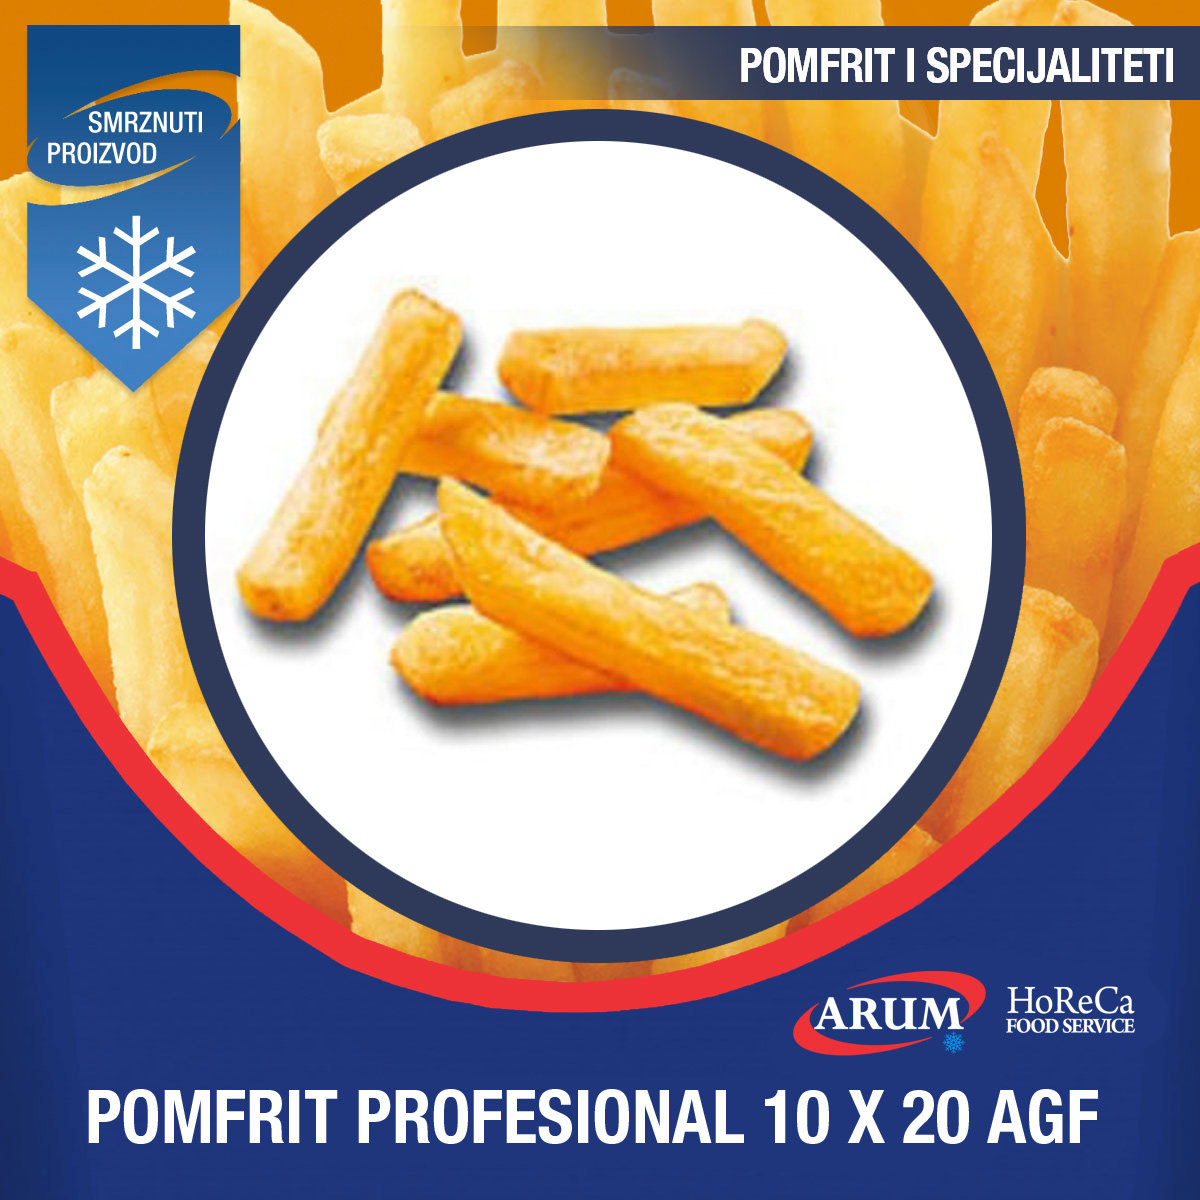 Agf 10x20 pomfrit professional-a 4x2.5 kg